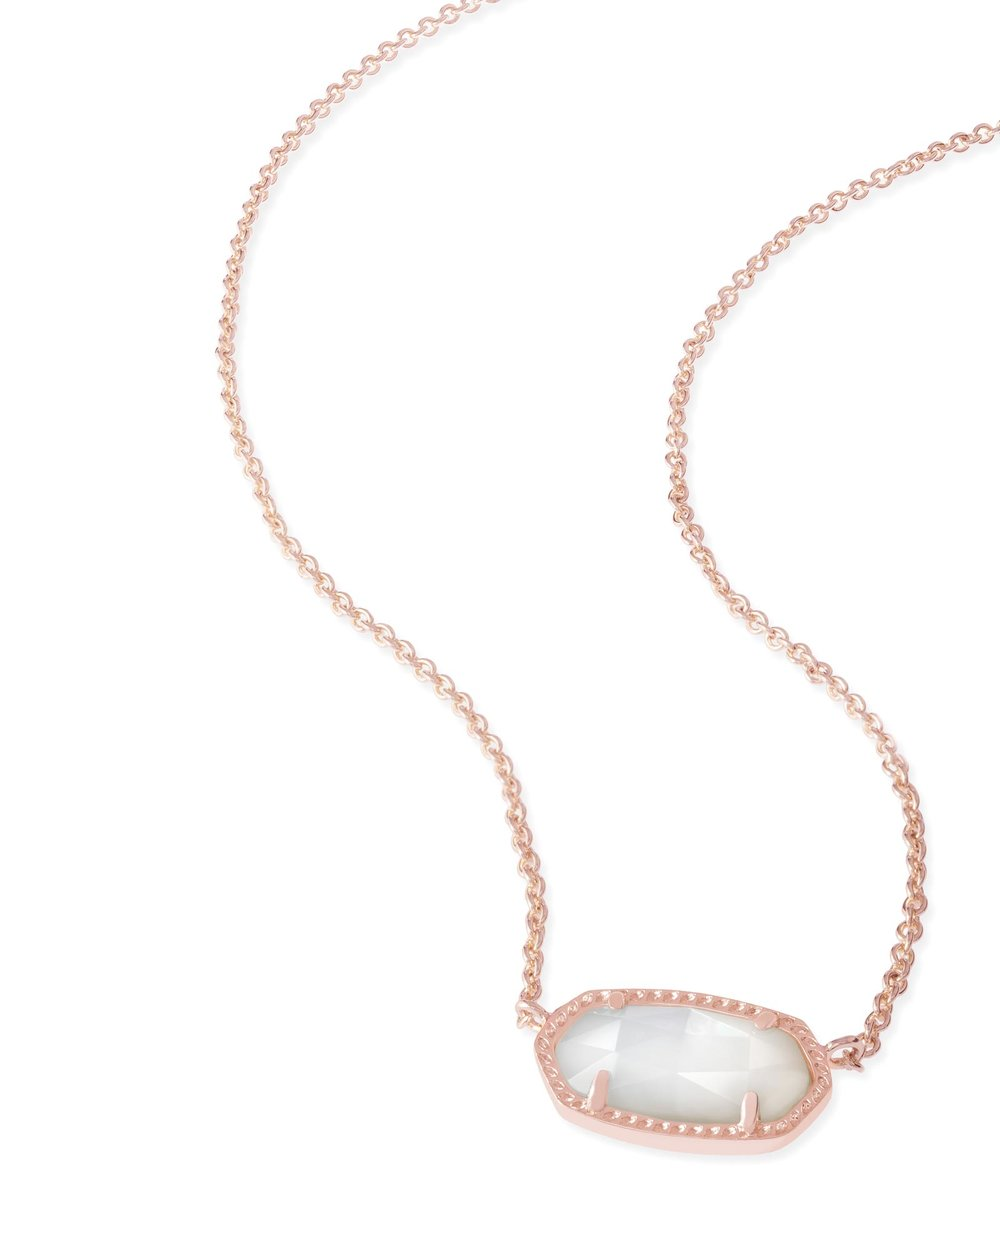 Kendra Scott Elisa Rose Gold Pendant Necklace